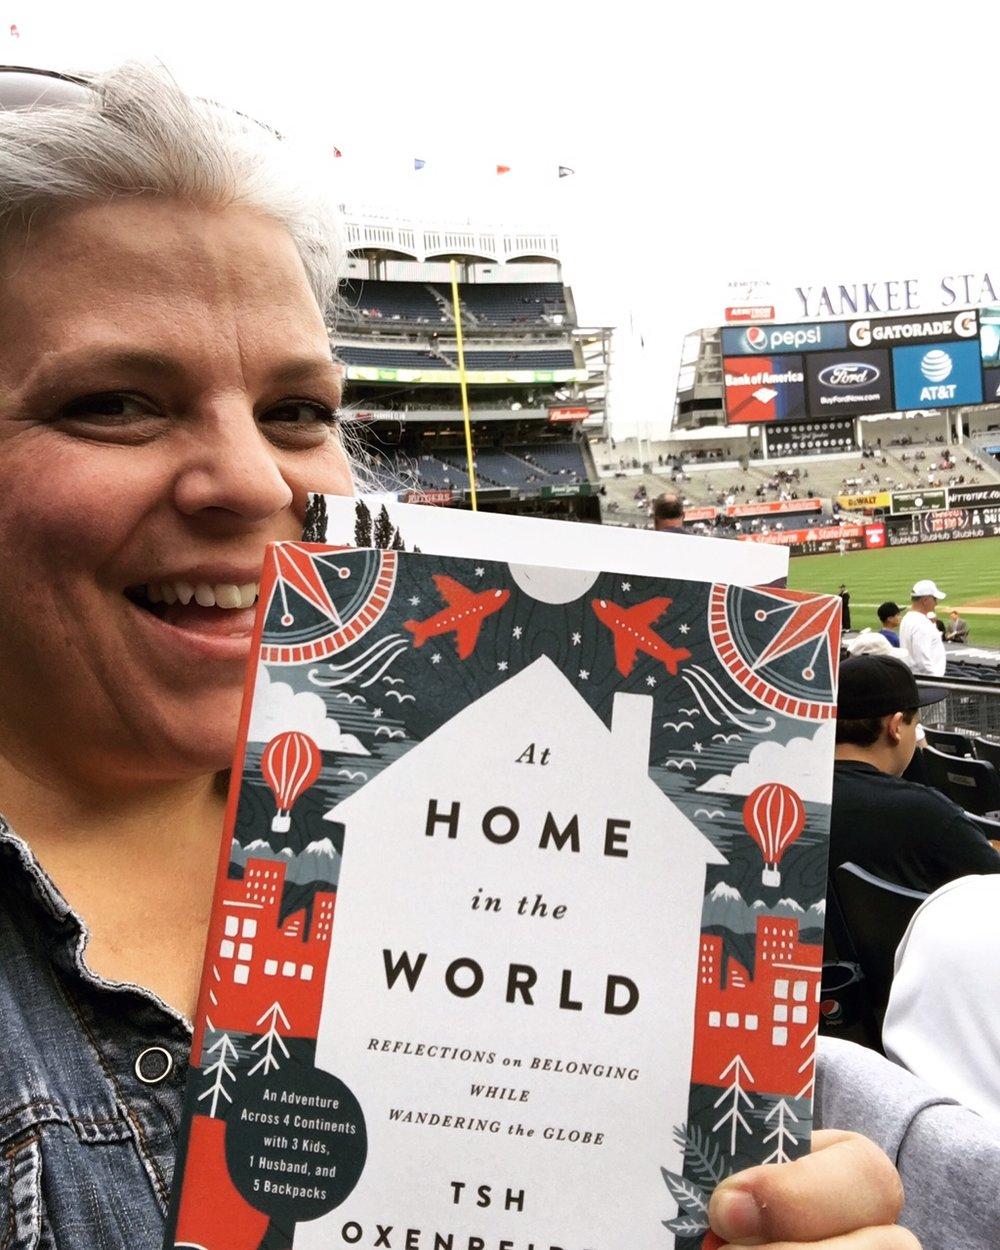 Reading at Yankee stadium